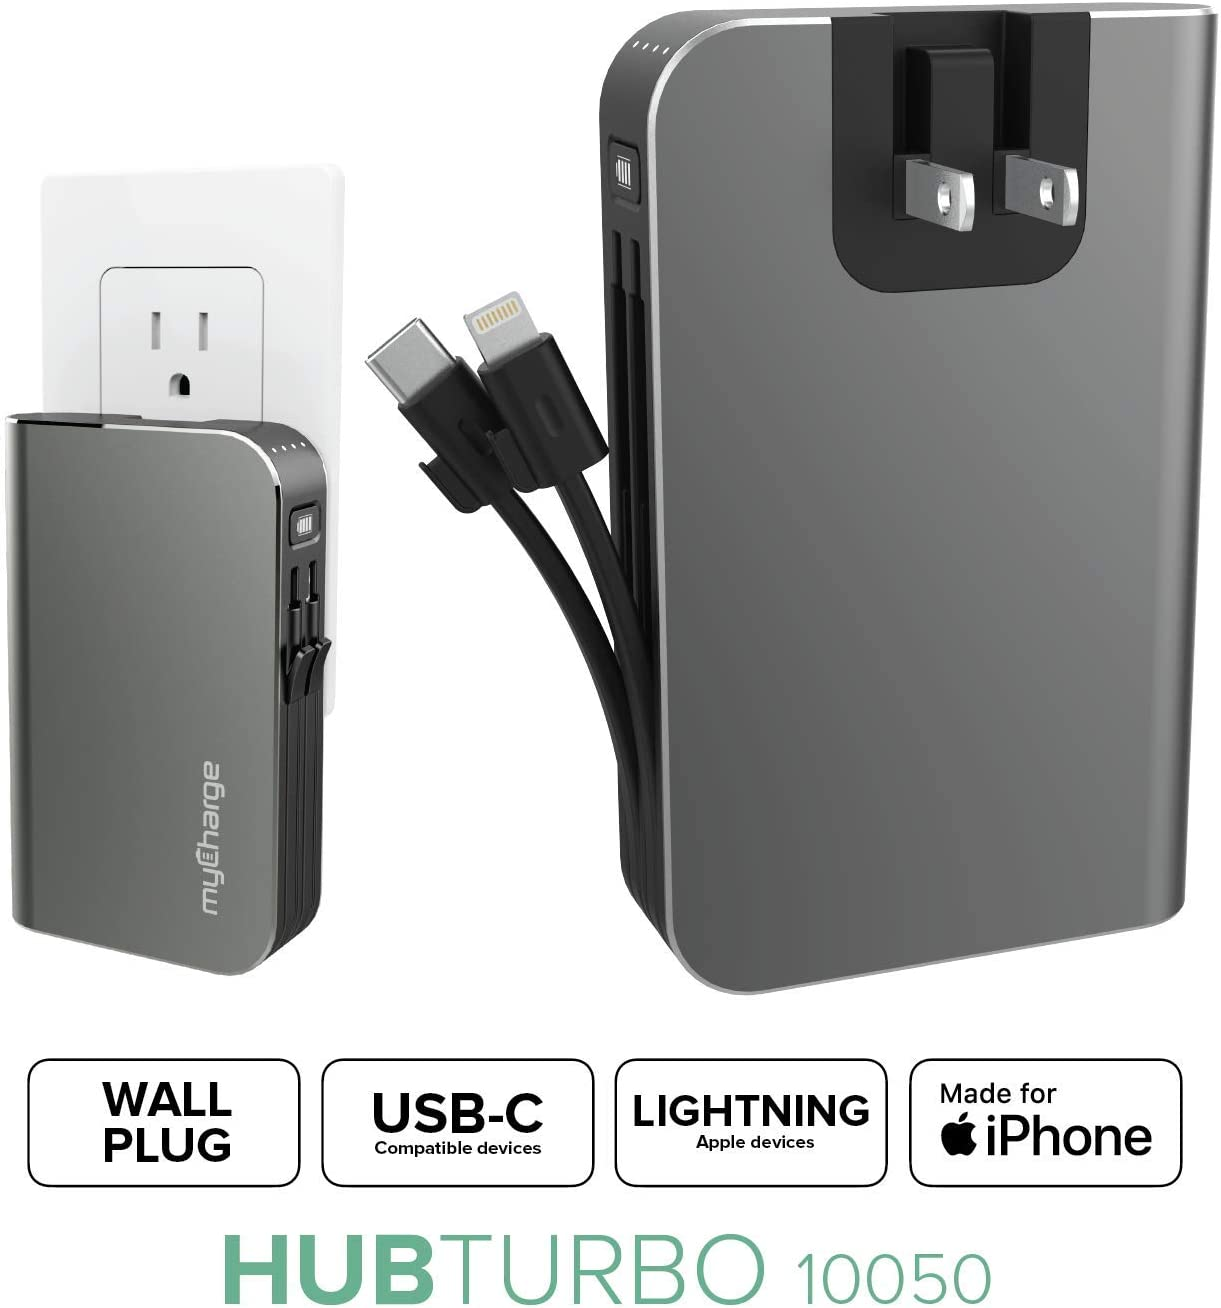 myCharge Portable Charger with Built in Cables & Wall Plug [iPhone Lightning + USB C] 10050 mAh 18W Hub Turbo Fast Charge Power Bank Cell Phone External Battery Pack for Apple & Android for Samsung